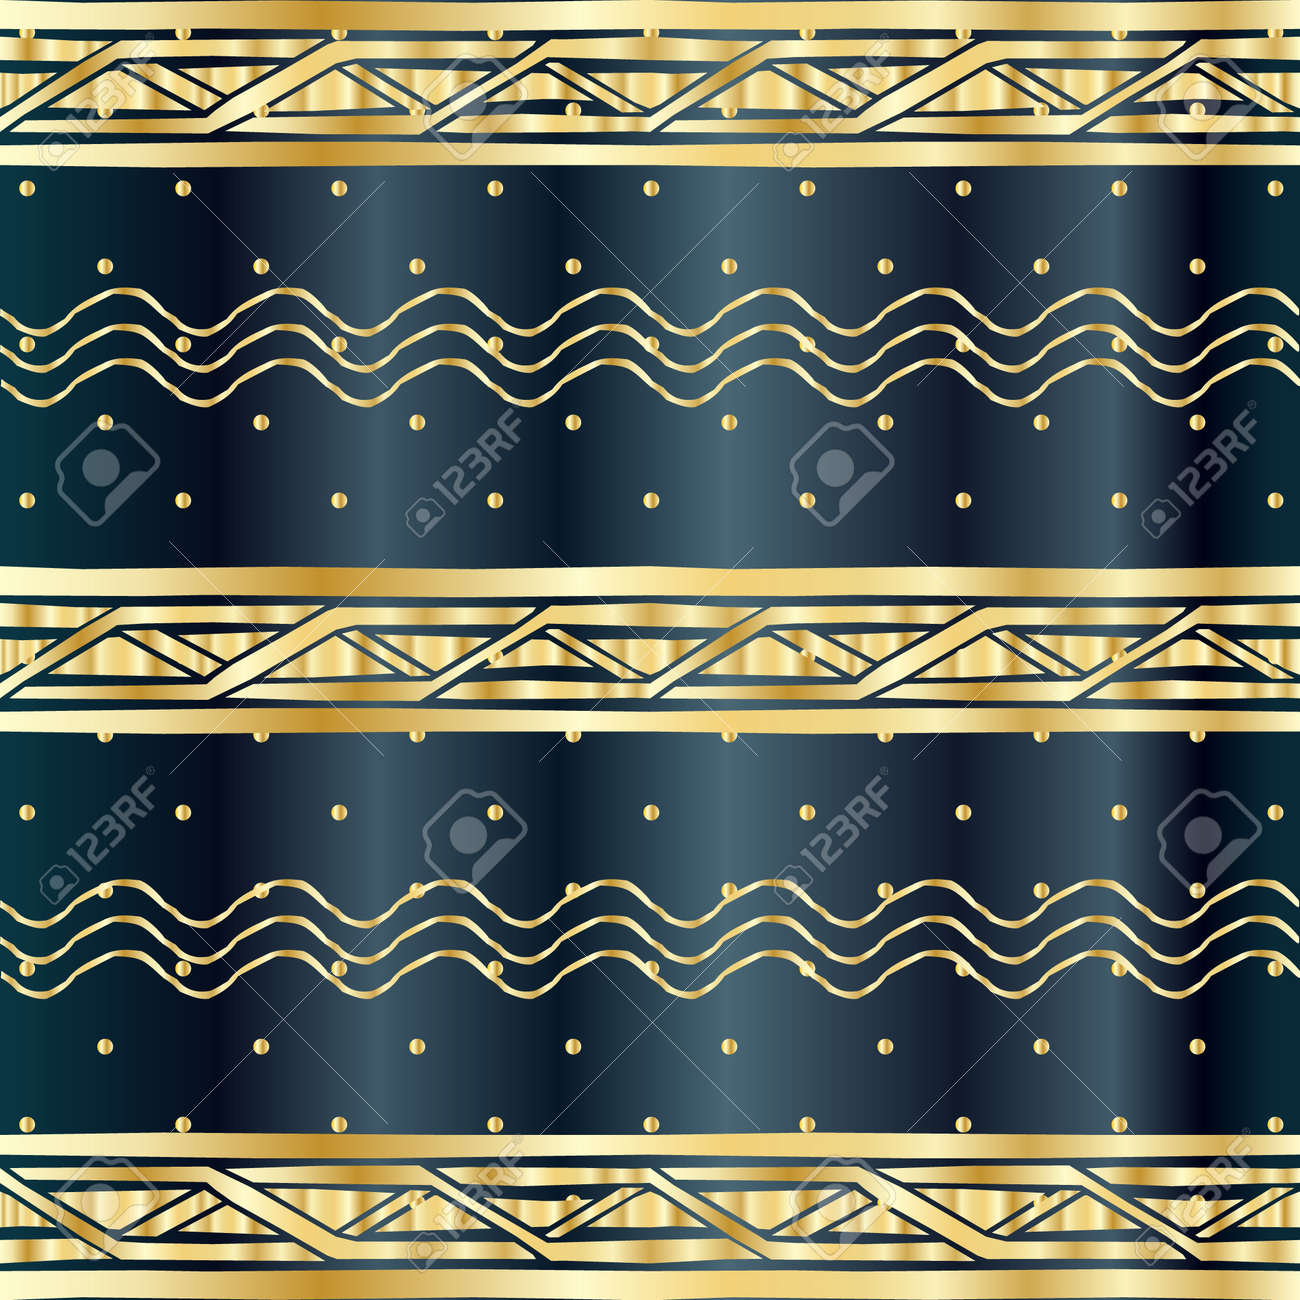 Indian Sari Borders Detailed And Easily Editable Pattern Gold Ethnic Ornamental